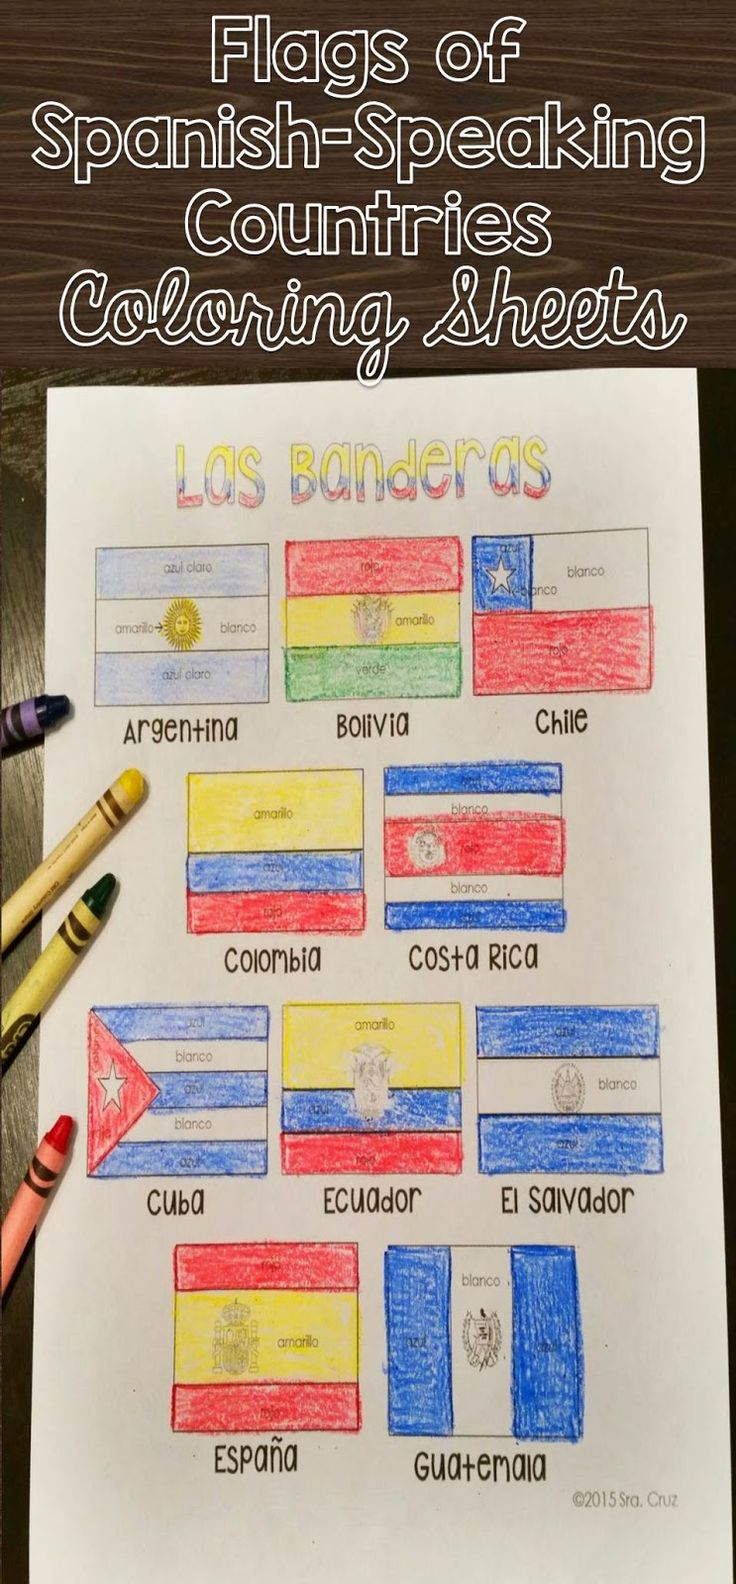 Flags of Spanish-Speaking Countries Coloring Sheets  These coloring pages practice Spanish colors using 20 flags of Spanish-speaking countries. Line versions of each flag have the color in Spanish for each section of the flag (rojo, blanco, azul, etc.)